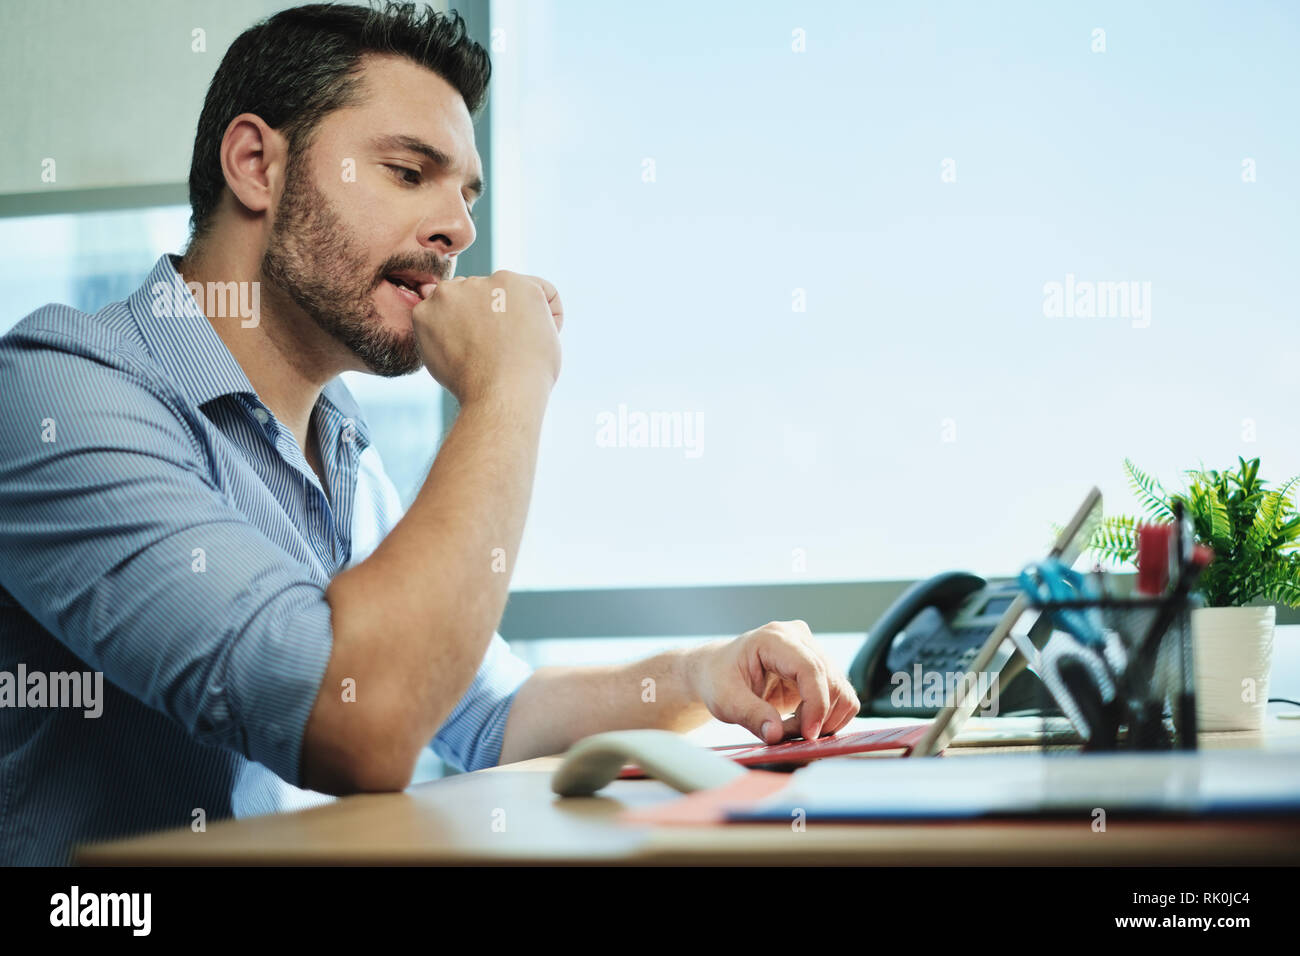 Anxious Businessman Biting Nails Working With Laptop Computer In Office - Stock Image